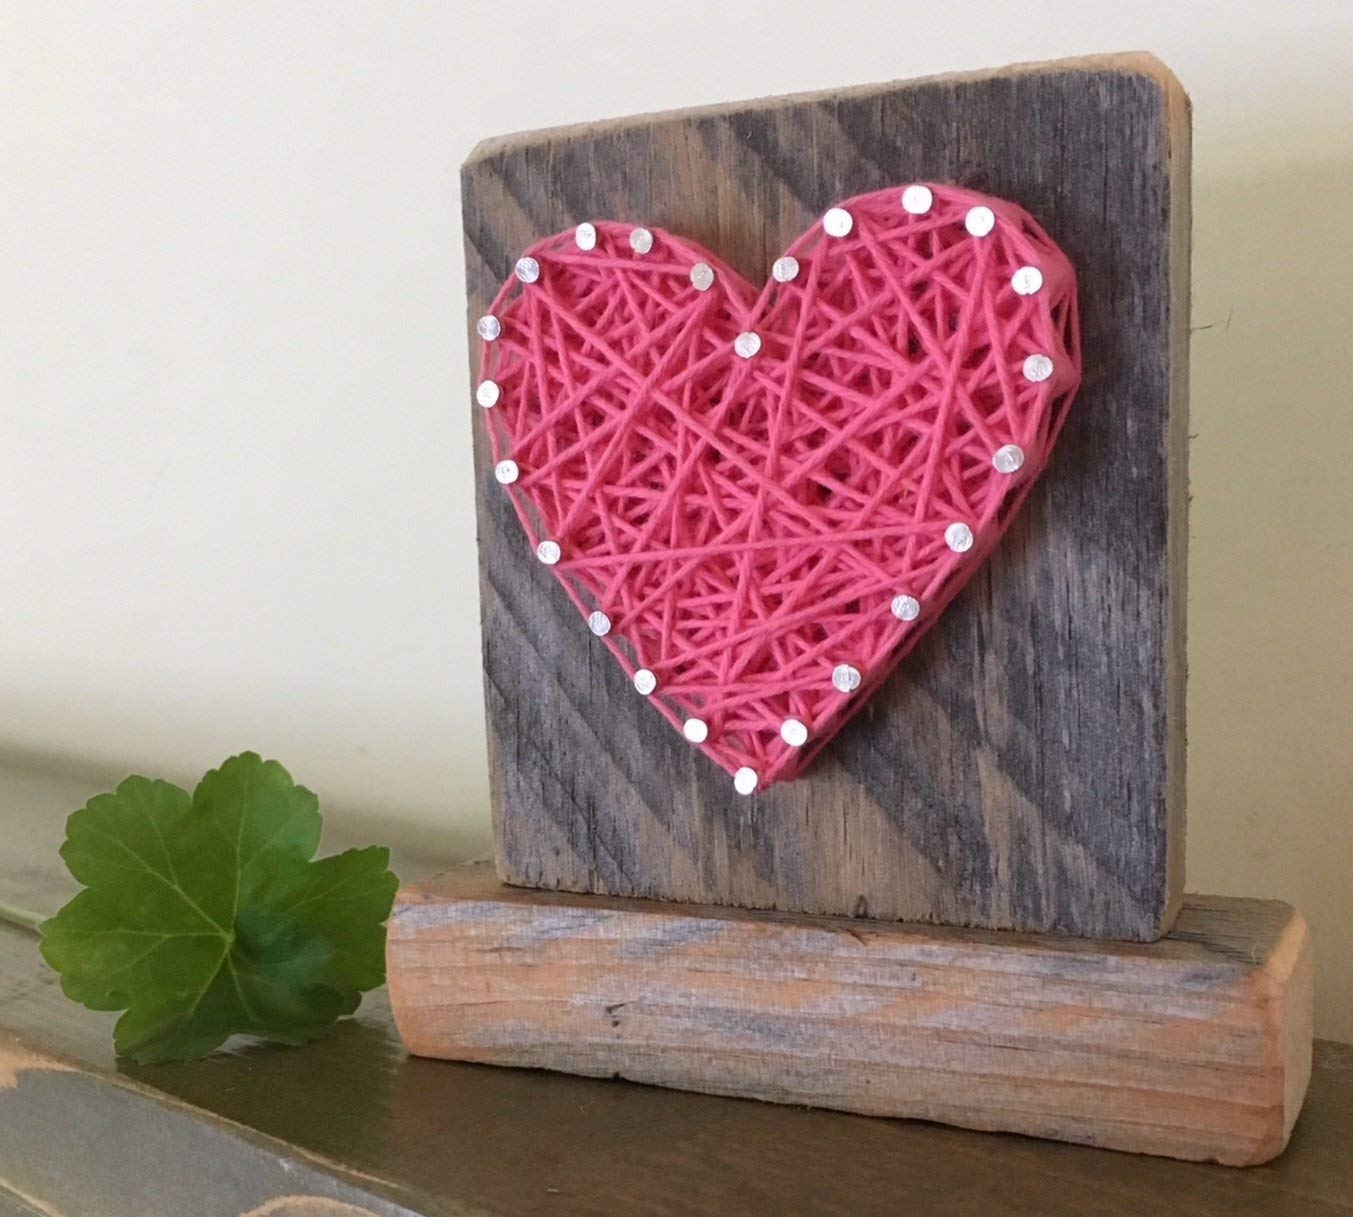 Sweet & small freestanding wooden pink string art heart sign. Perfect for Mother's Day, home accents, Wedding favors, Anniversary gifts, nursery decoration and just because gifts by Nail it Art. by Nail it Art (Image #1)